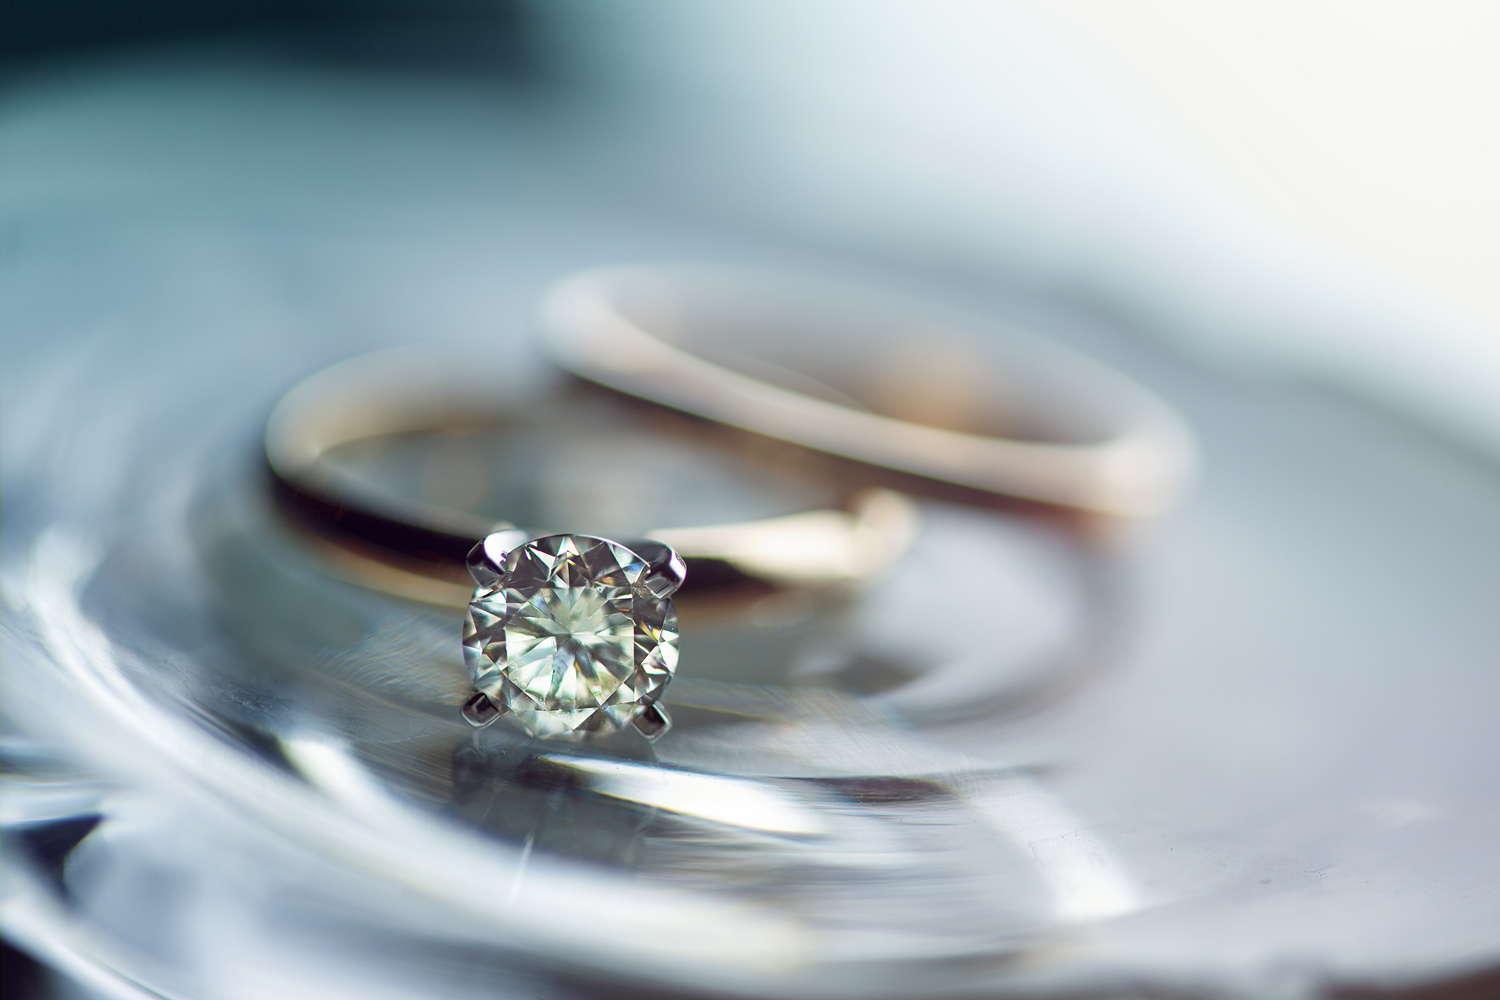 Avrohom_Perl_Commercial_Photography_jewelry_ring_shot.jpg